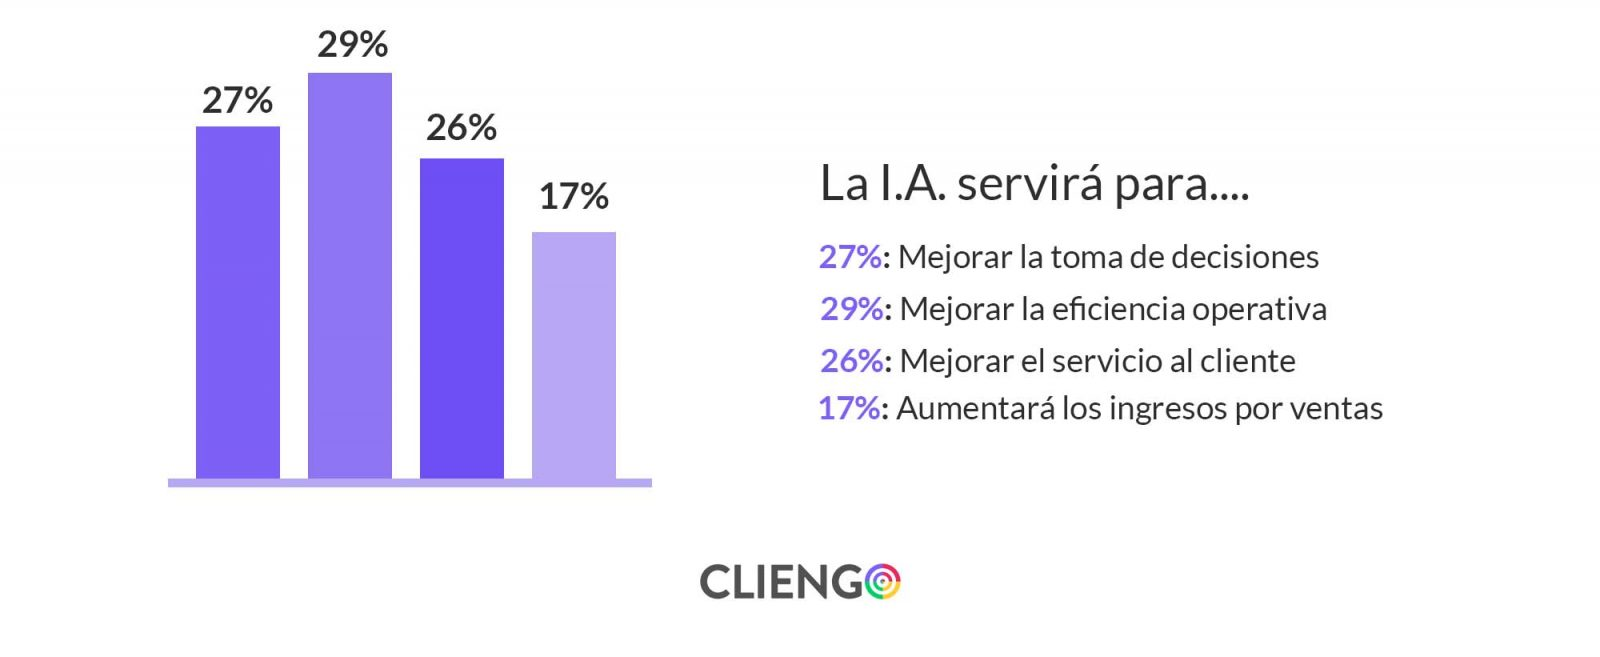 Para que sirve la Inteligencia Artificial (I.A.) en marketing y ventas para las empresas